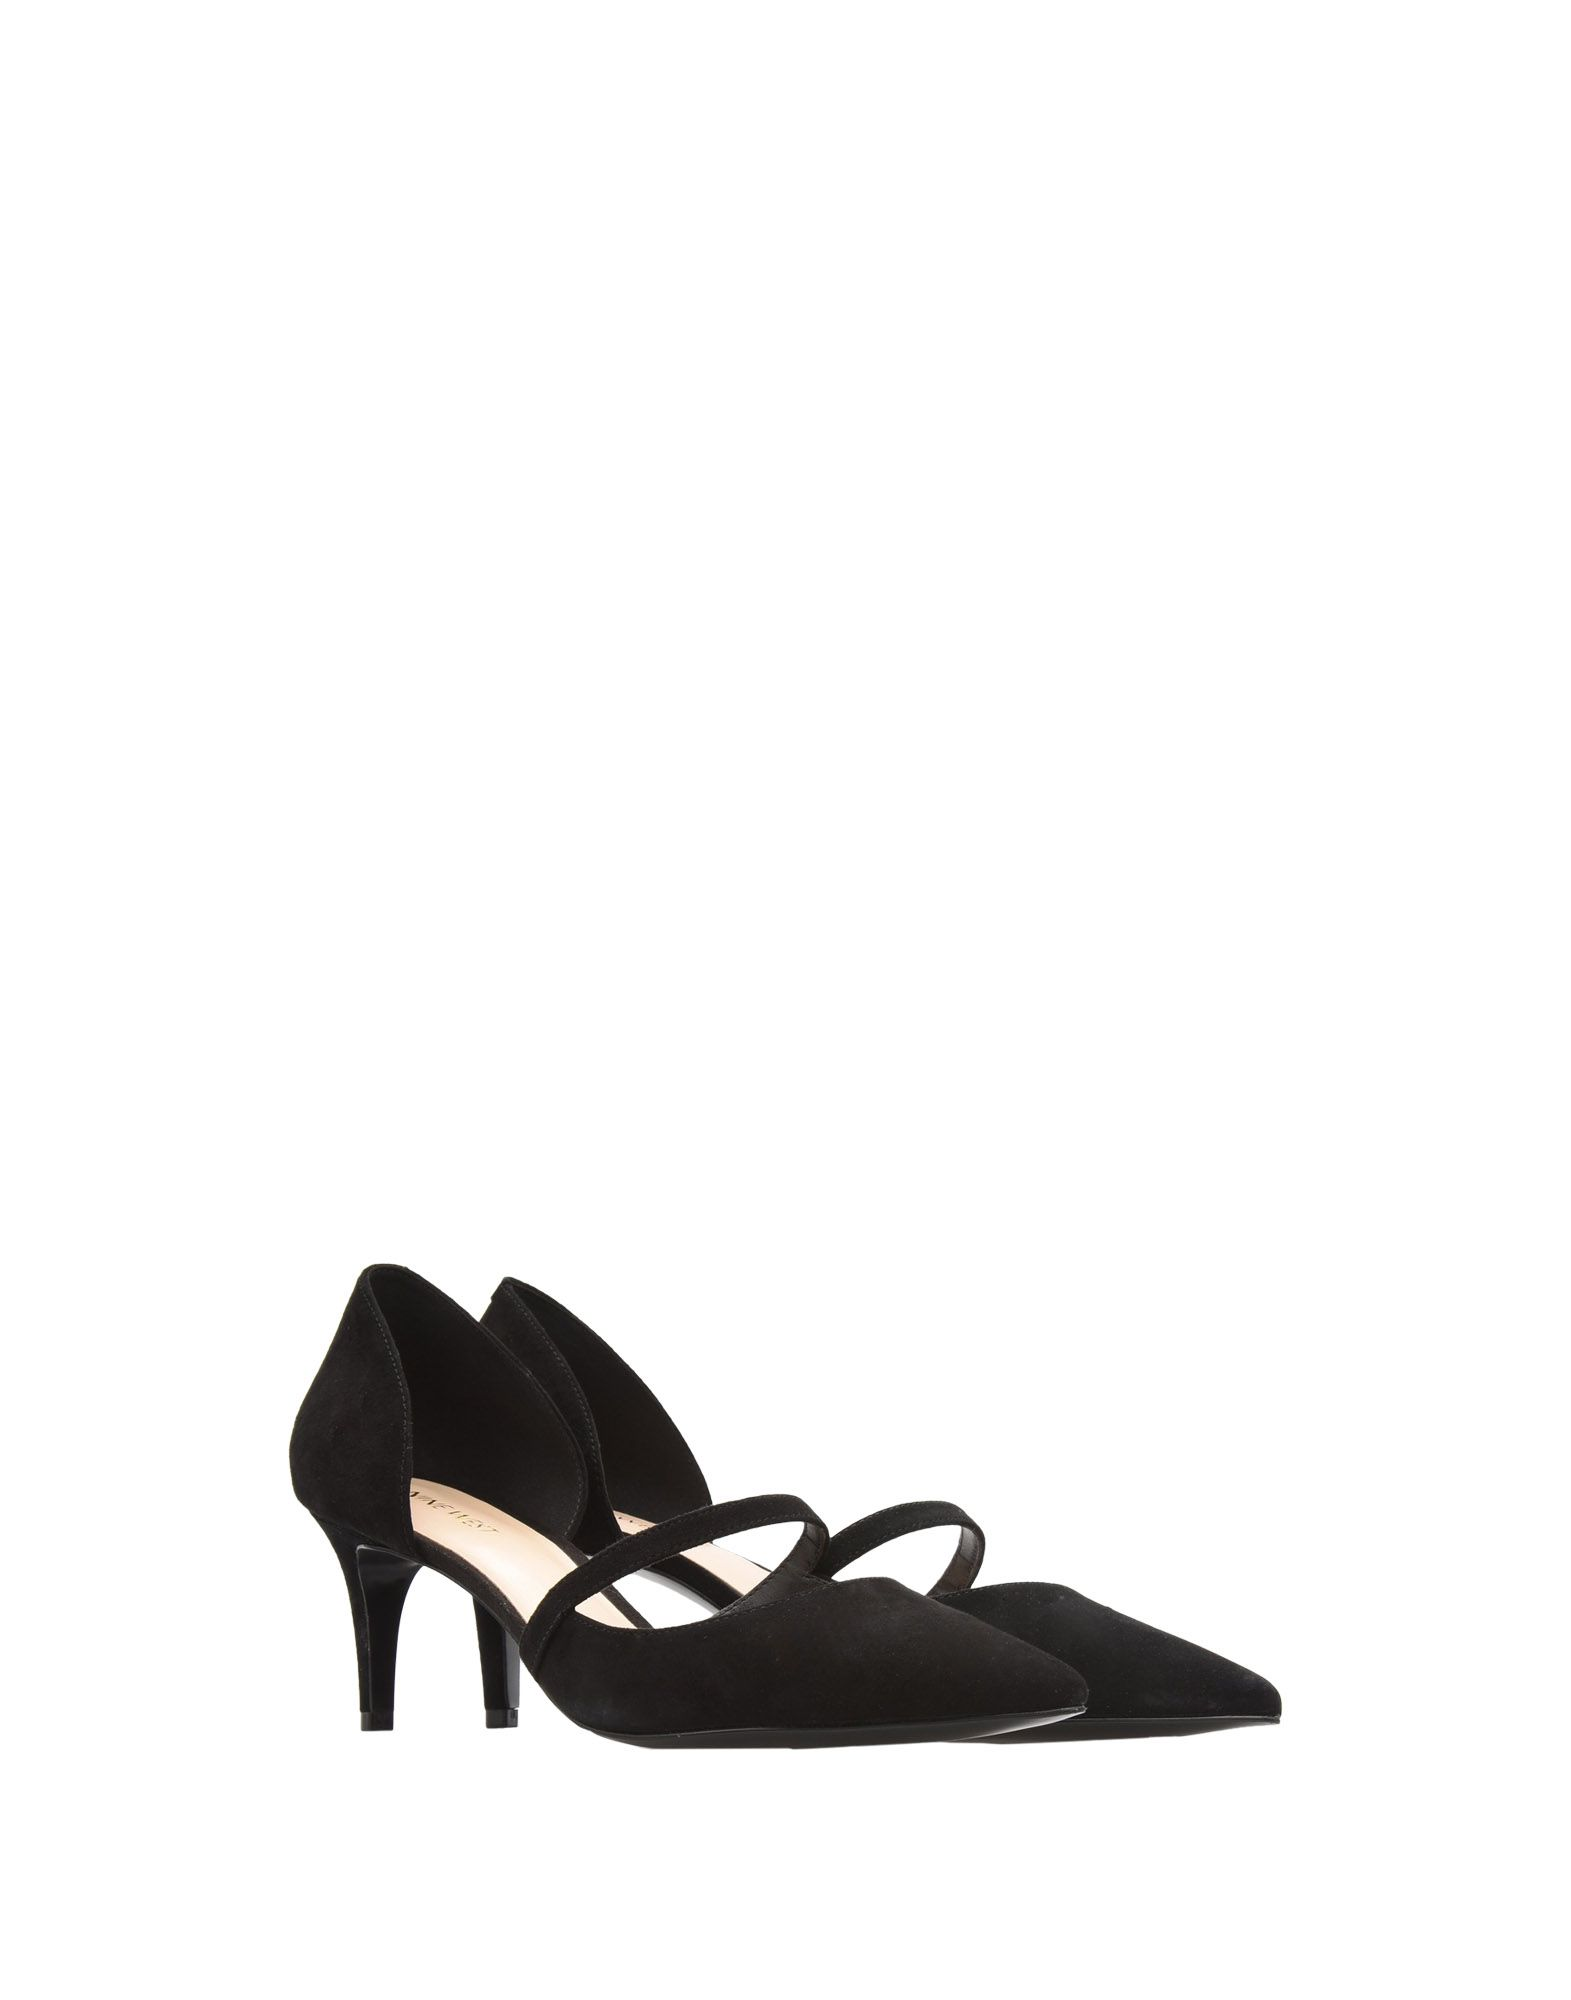 Escarpins Nine West Femme - Escarpins Nine West sur